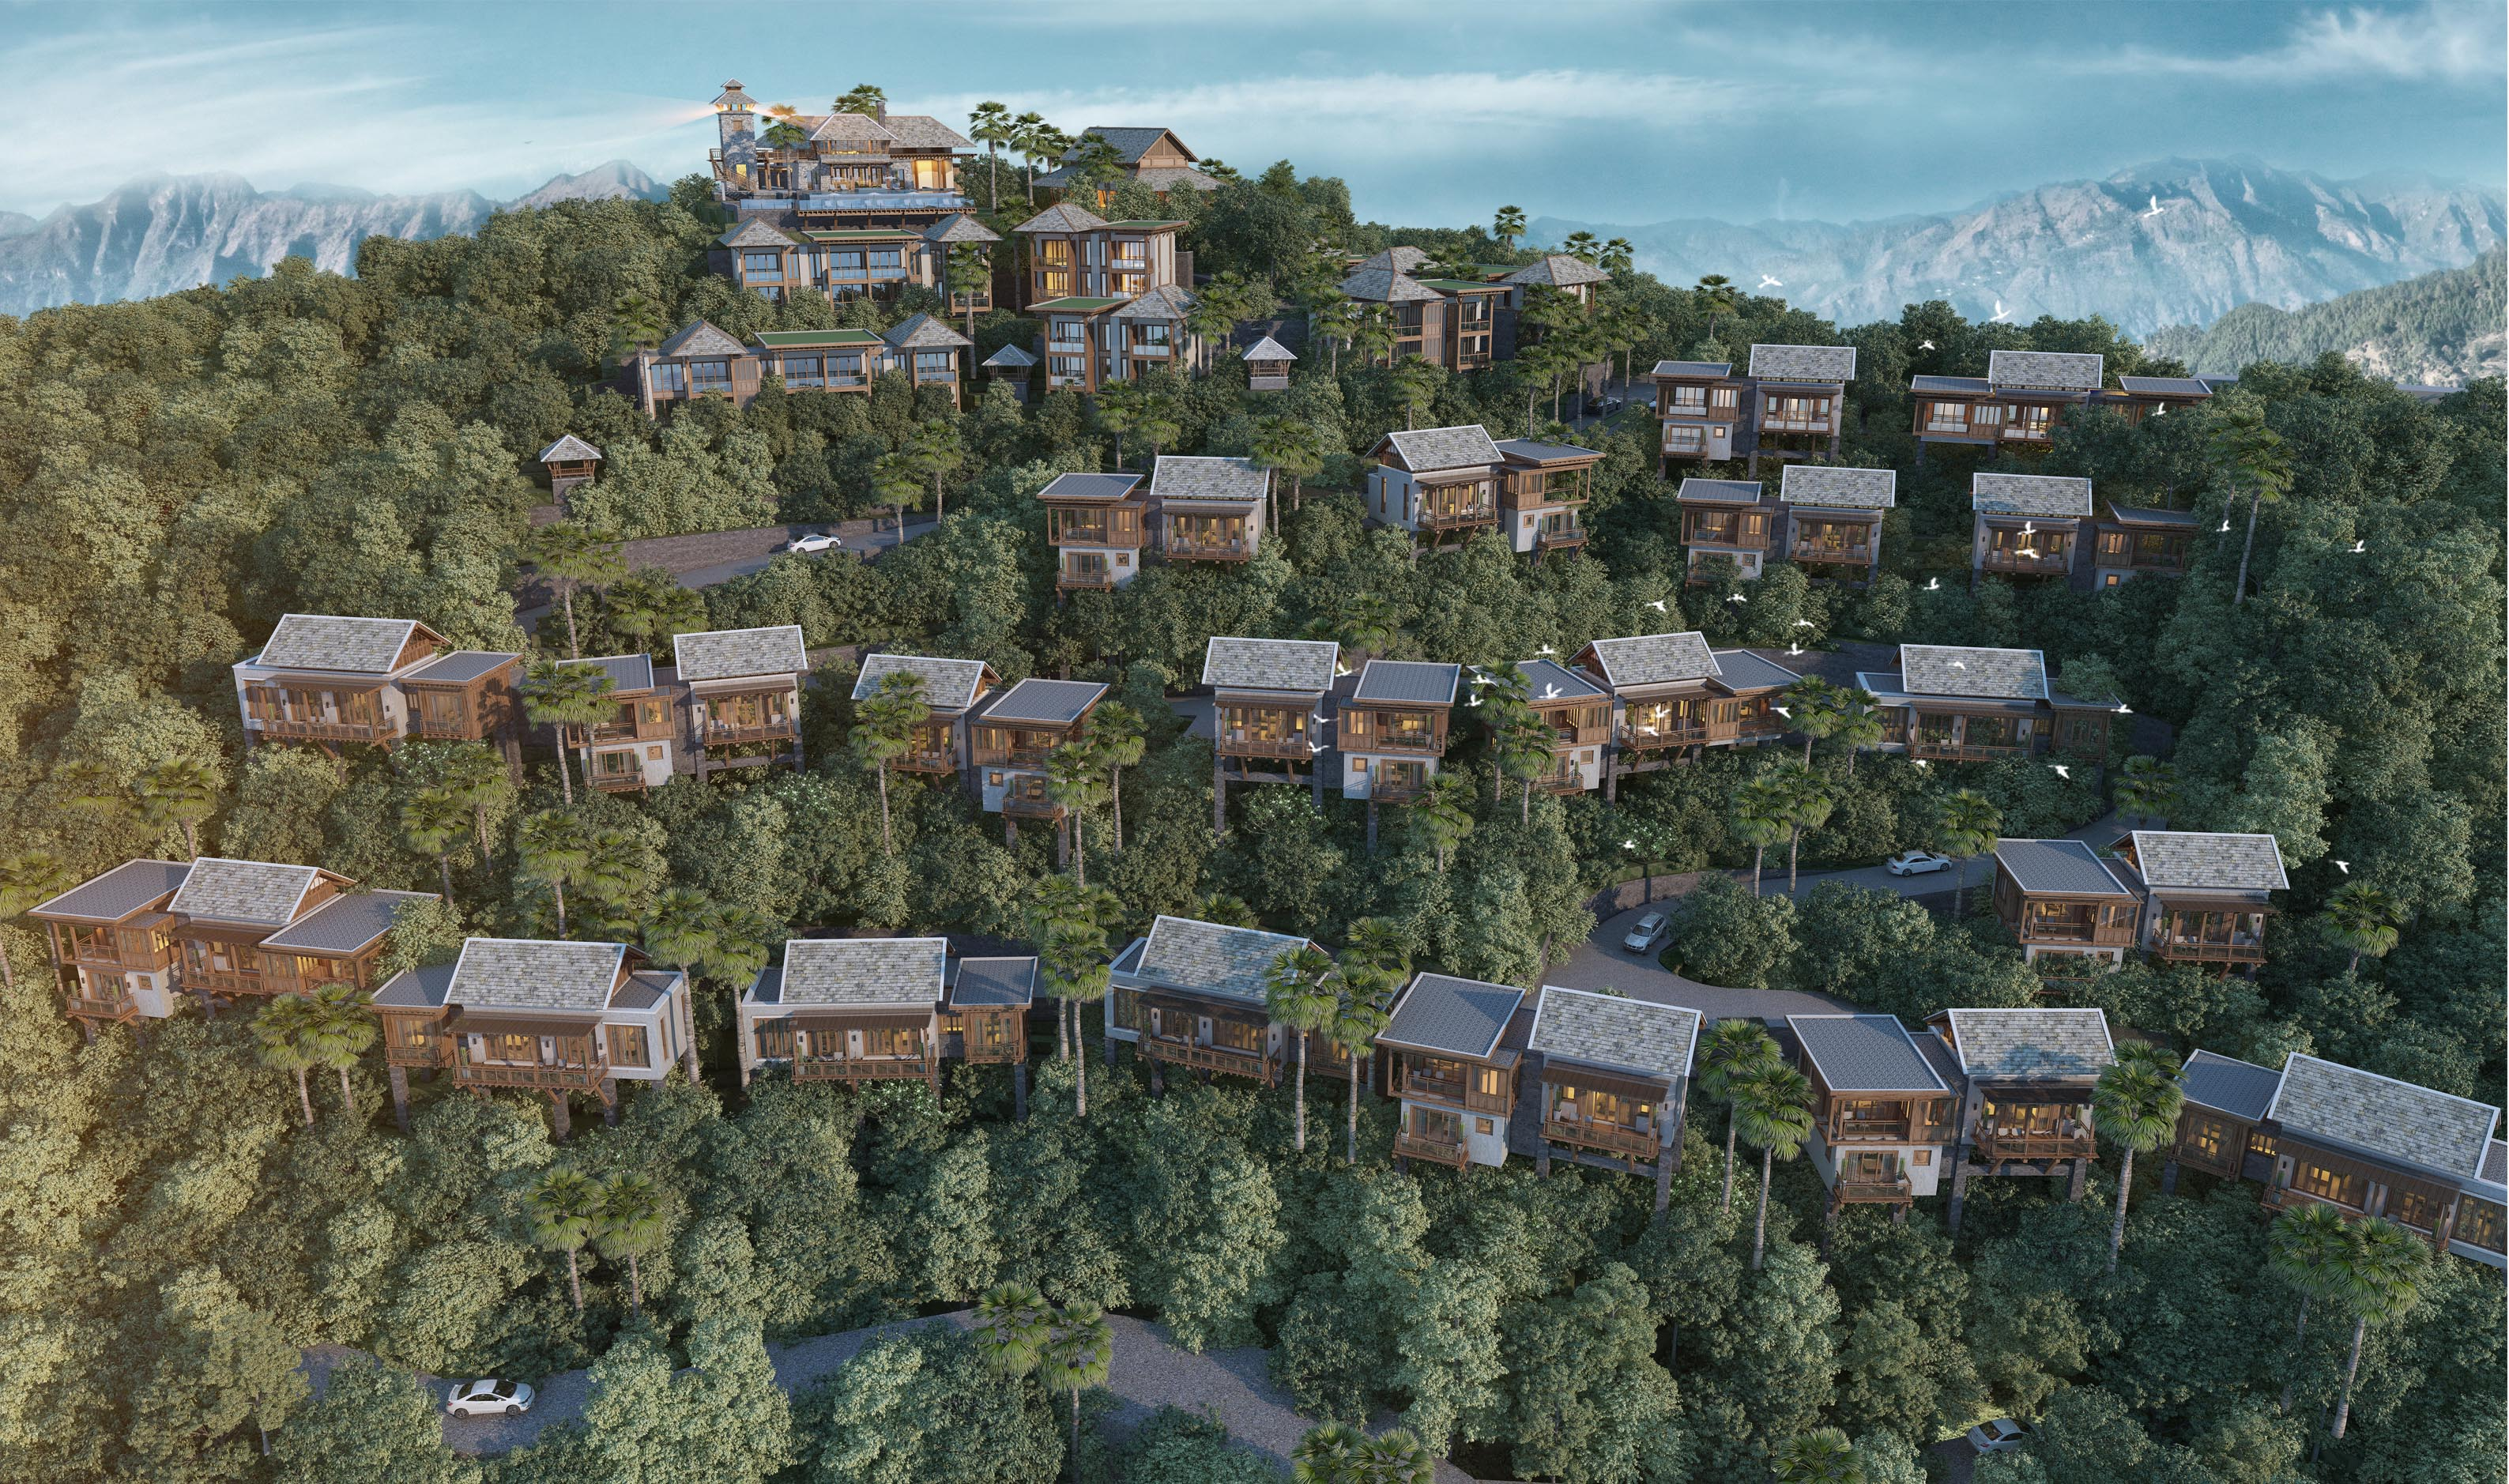 dusit international to make nepal debut with luxury mountaintop